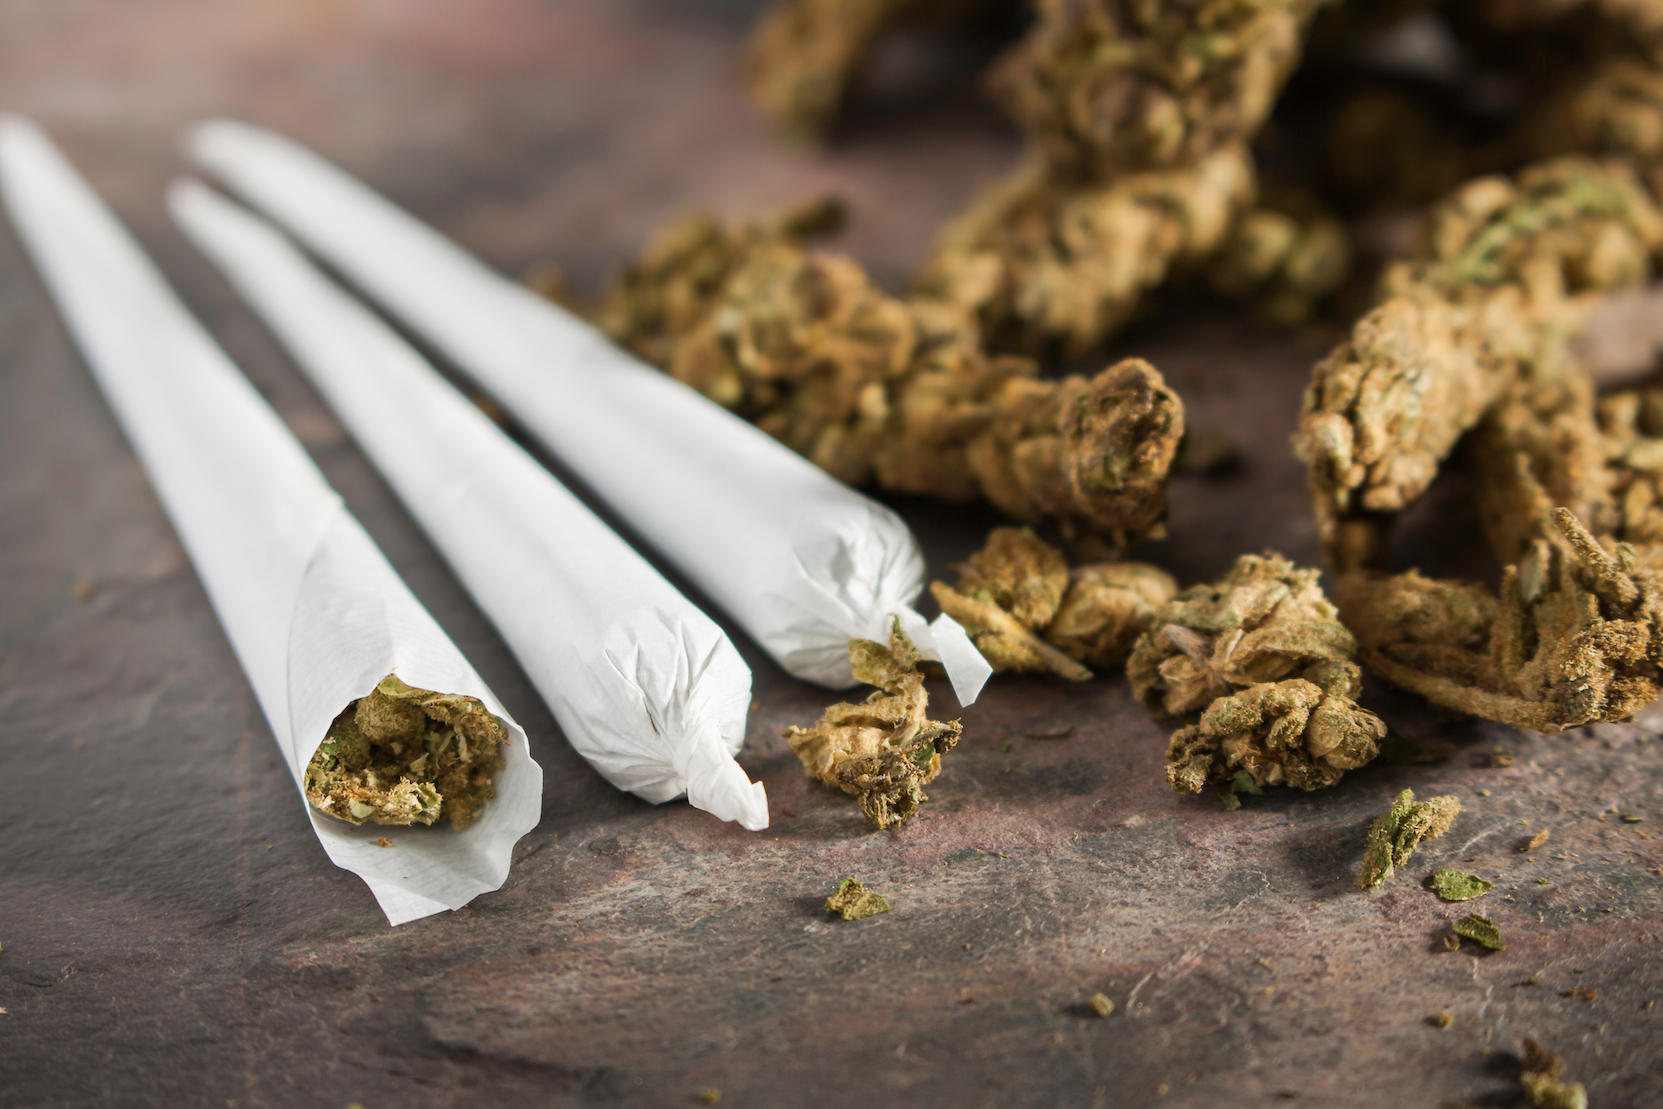 Marijuana has become the preferred choice over alcohol and tobacco among young people, according to a recent study.